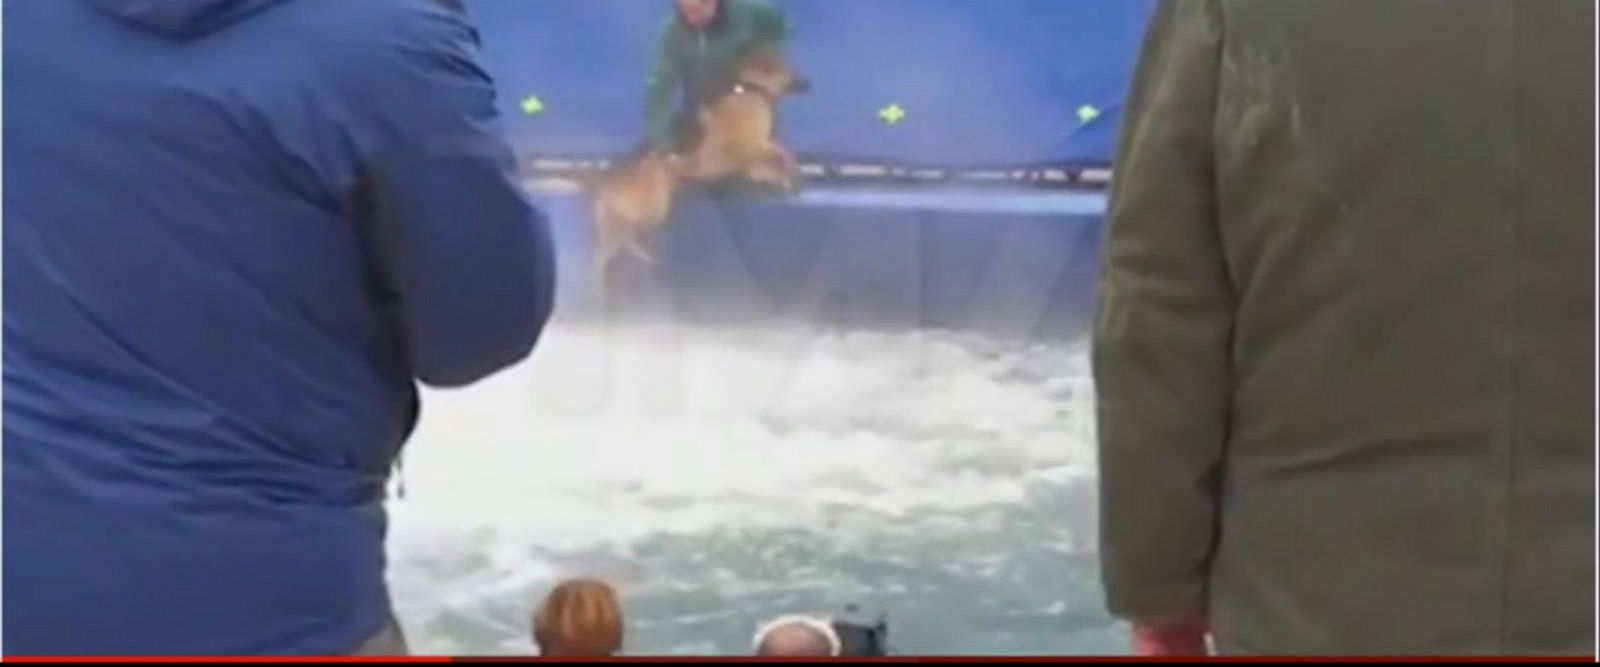 VIDEO: Dog's Treatment on Film Set Sparks Outrage